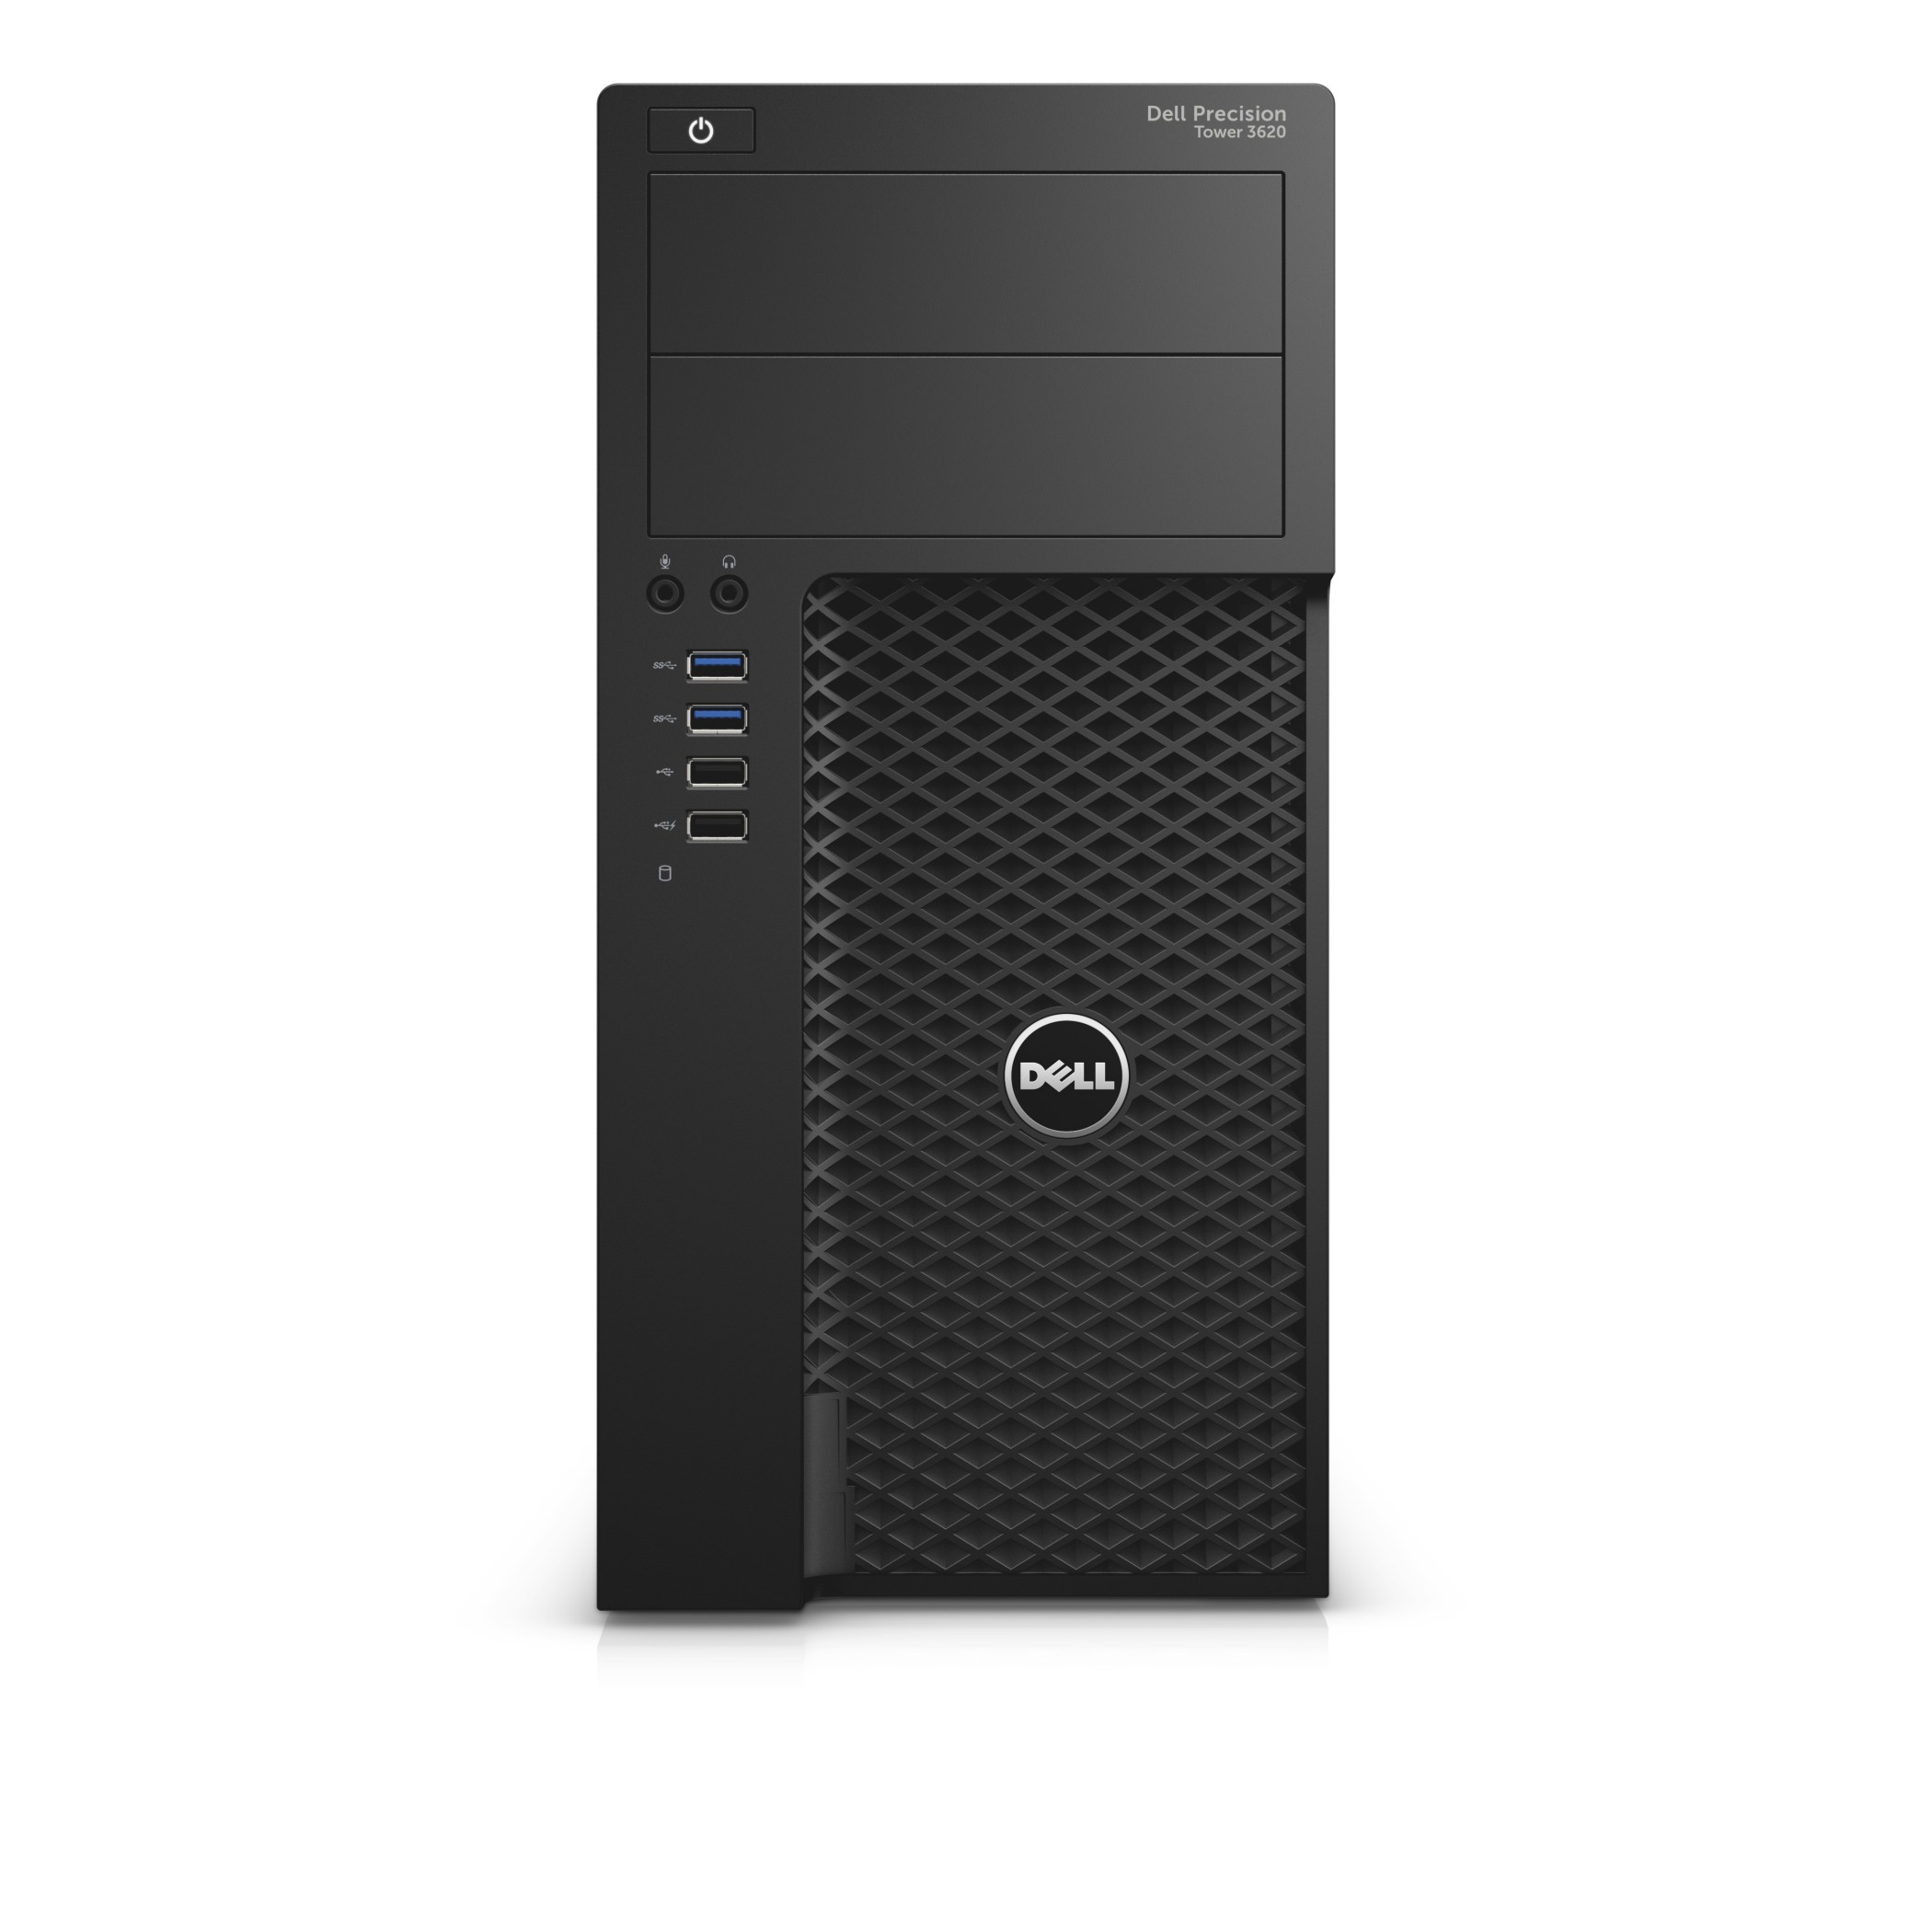 DELL Precision 3620 3.2GHz i5-6500 Mini Tower Black